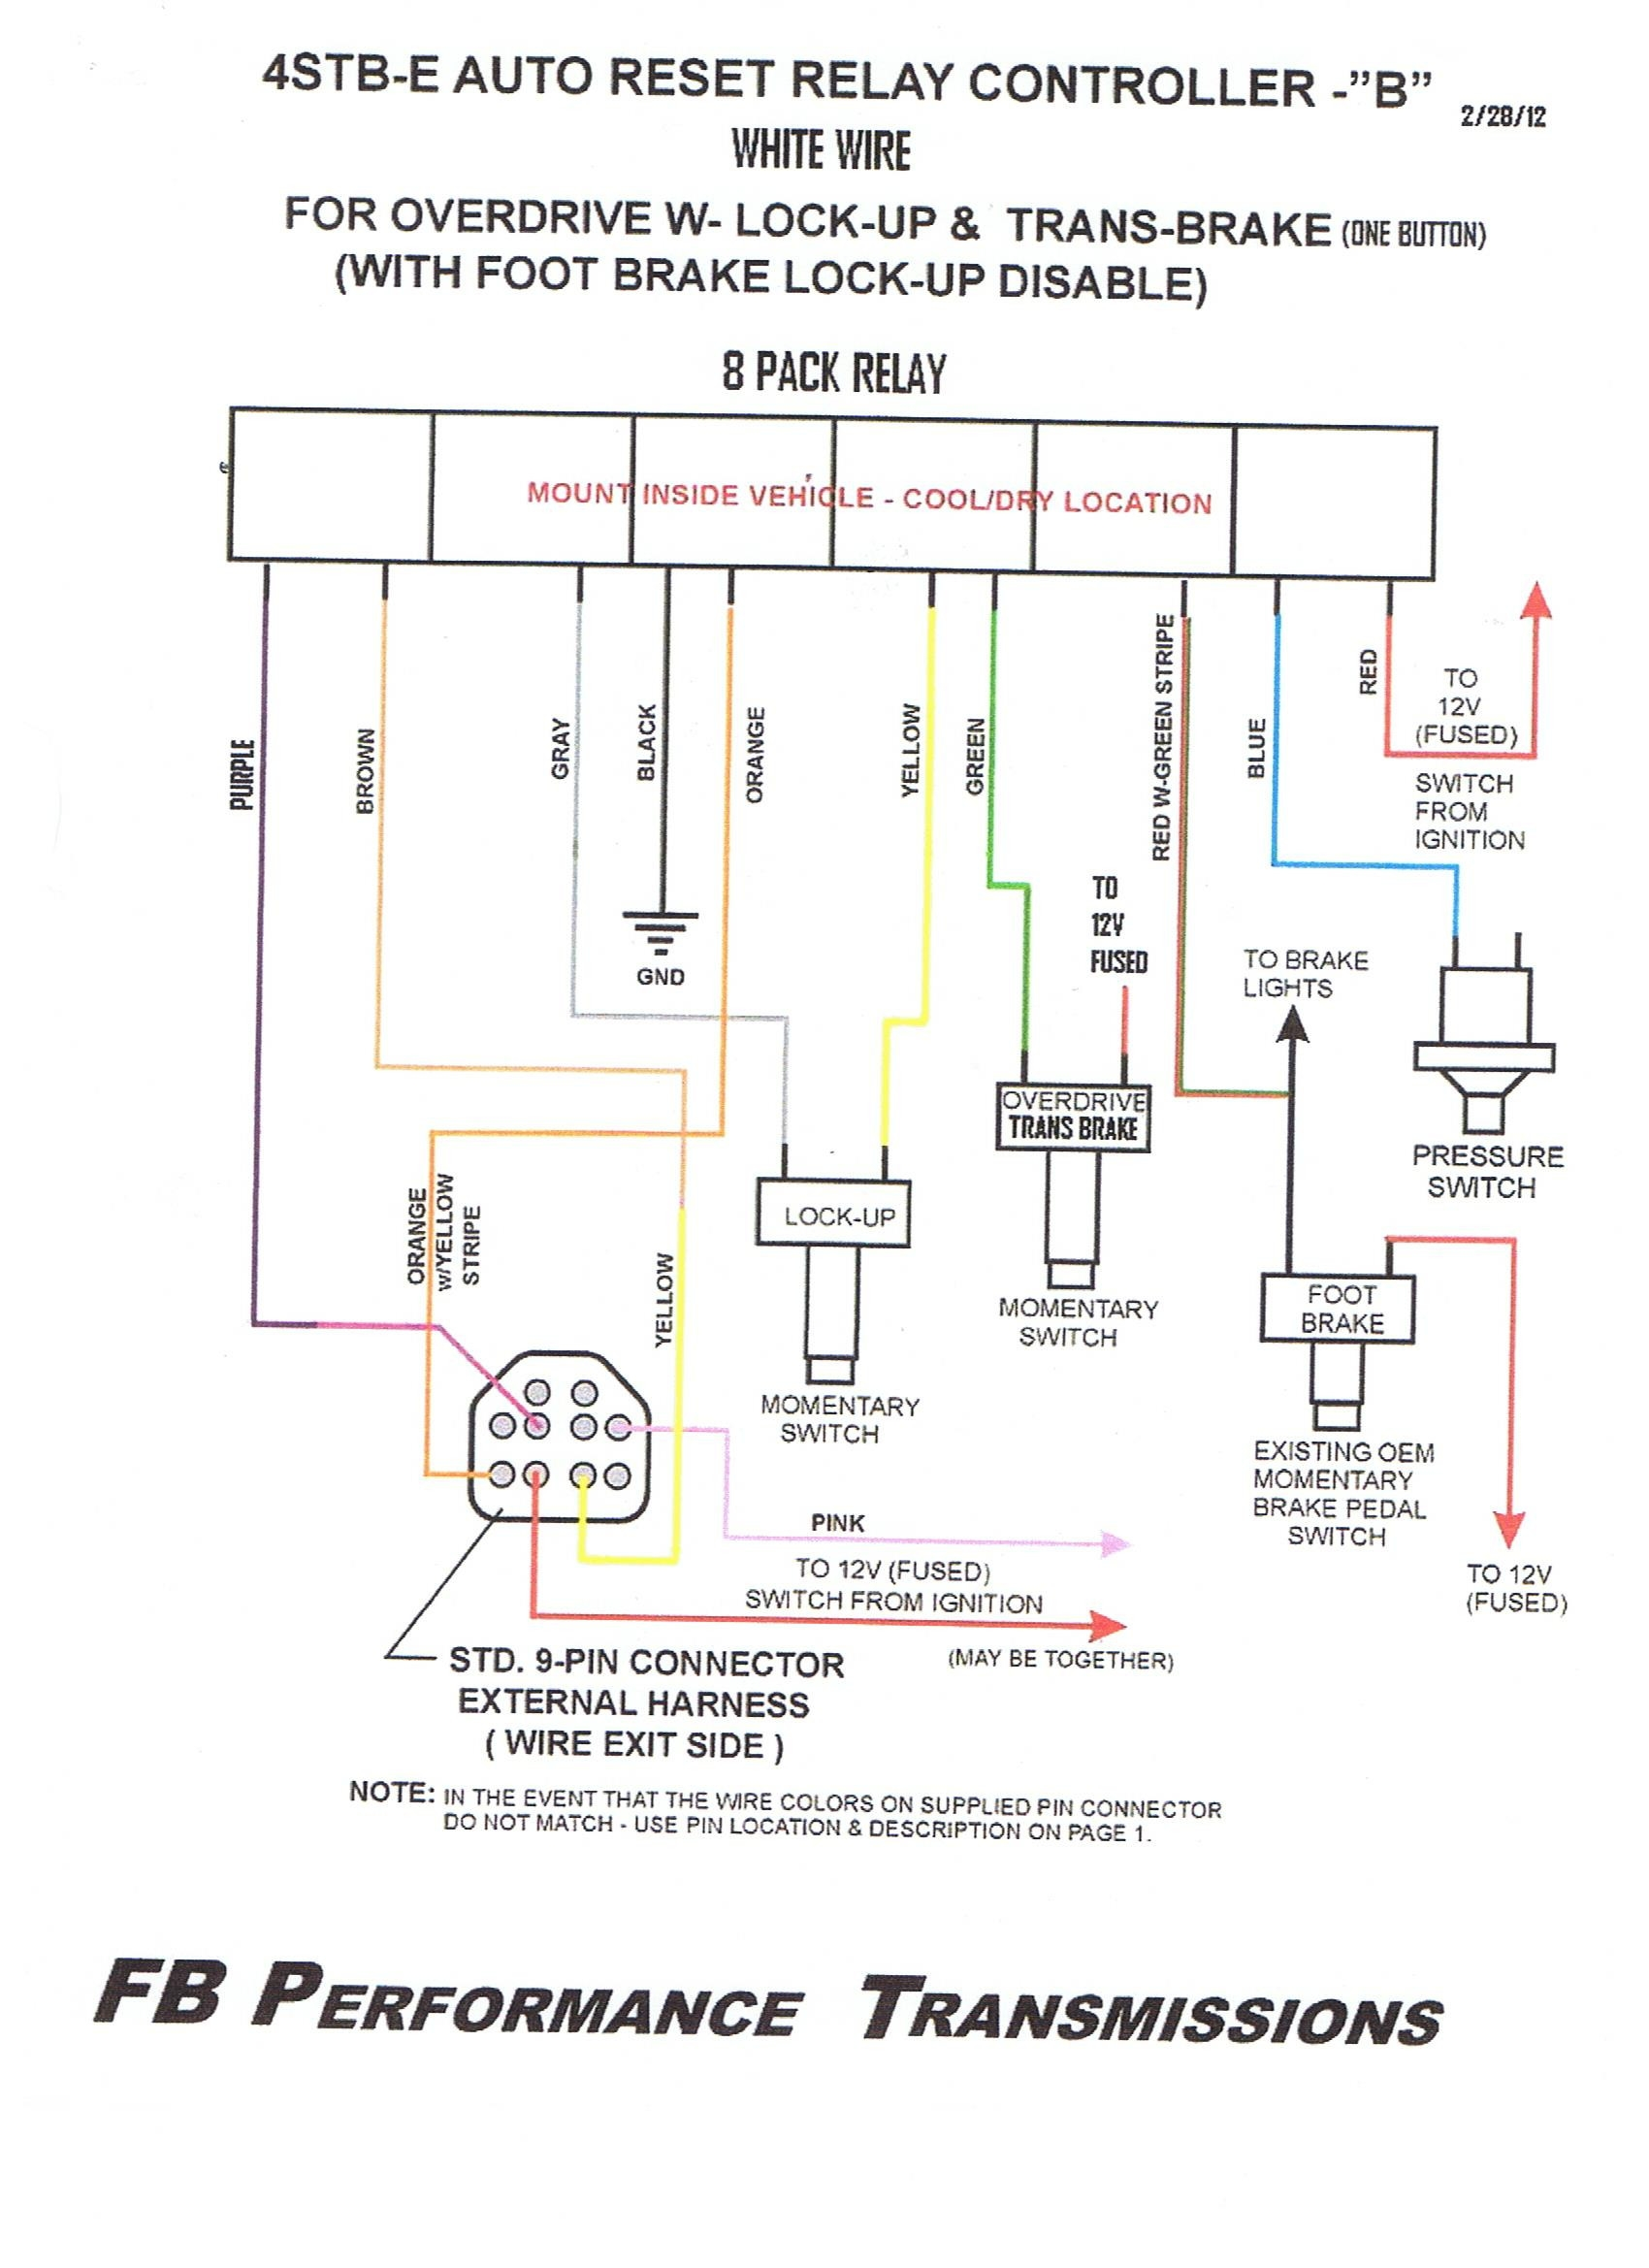 solenoid valve wiring diagram Download-Wiring Diagram Symbol solenoid Simple Hydraulic solenoid Valve Wiring Diagram New ford Axod Transmission 15-m